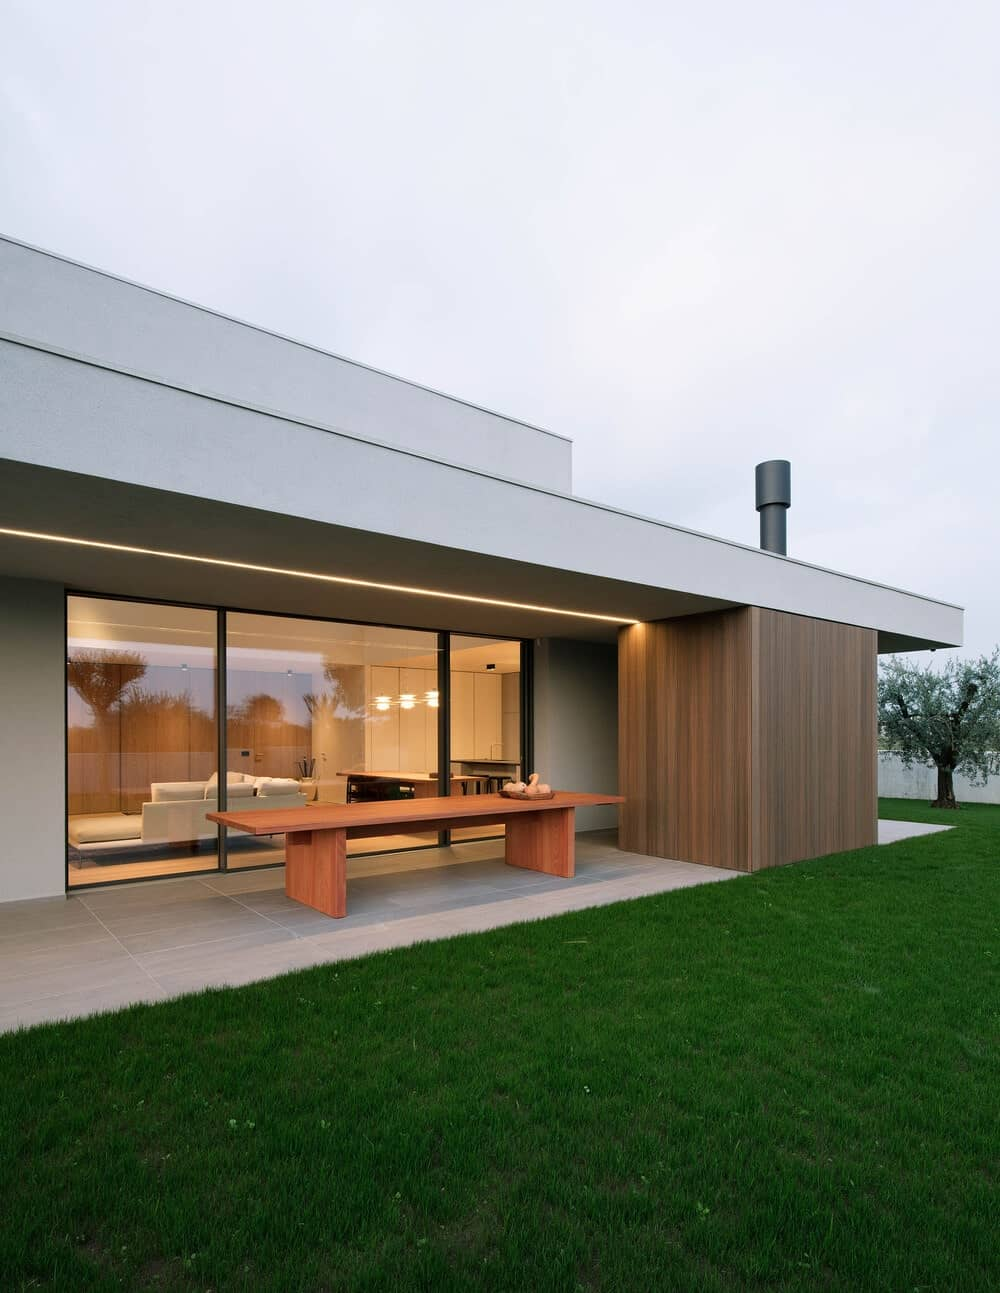 The covered patio of the house right outside the glass wall has a long wooden rectangular dining table.